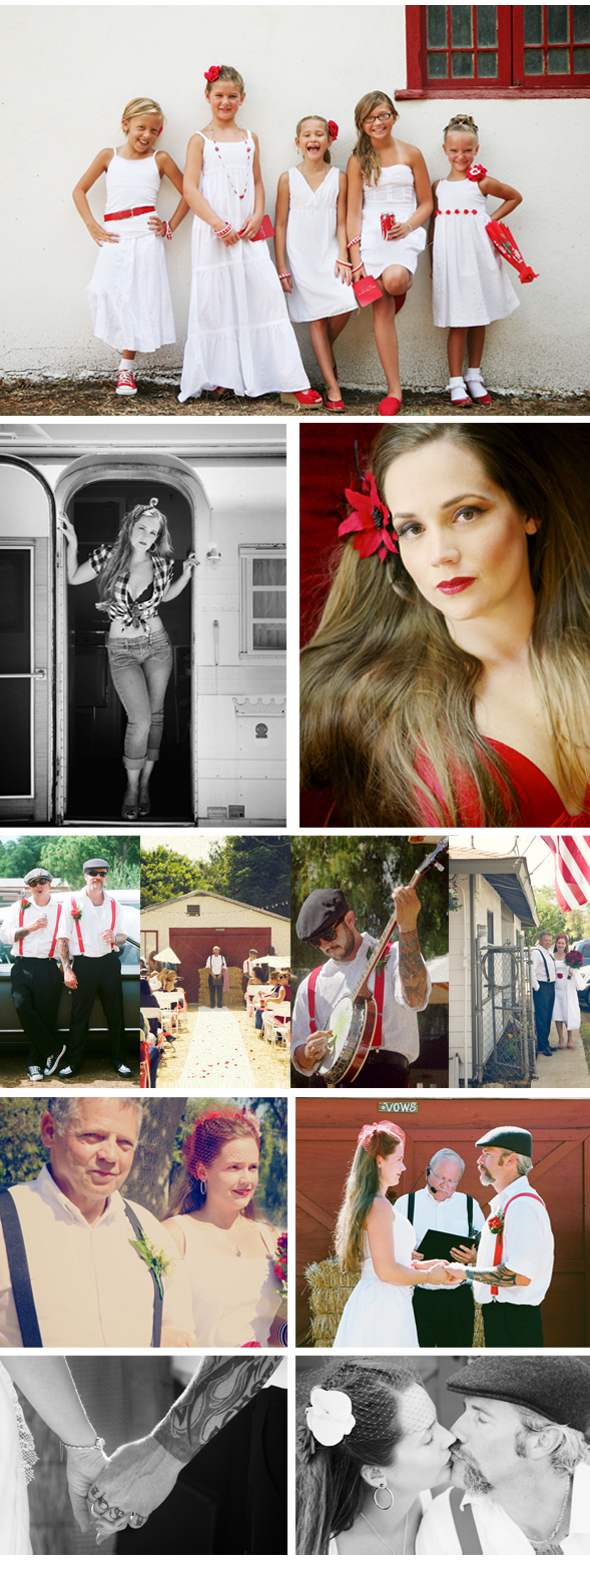 vintage wedding with sexy dressing room photos and airstream